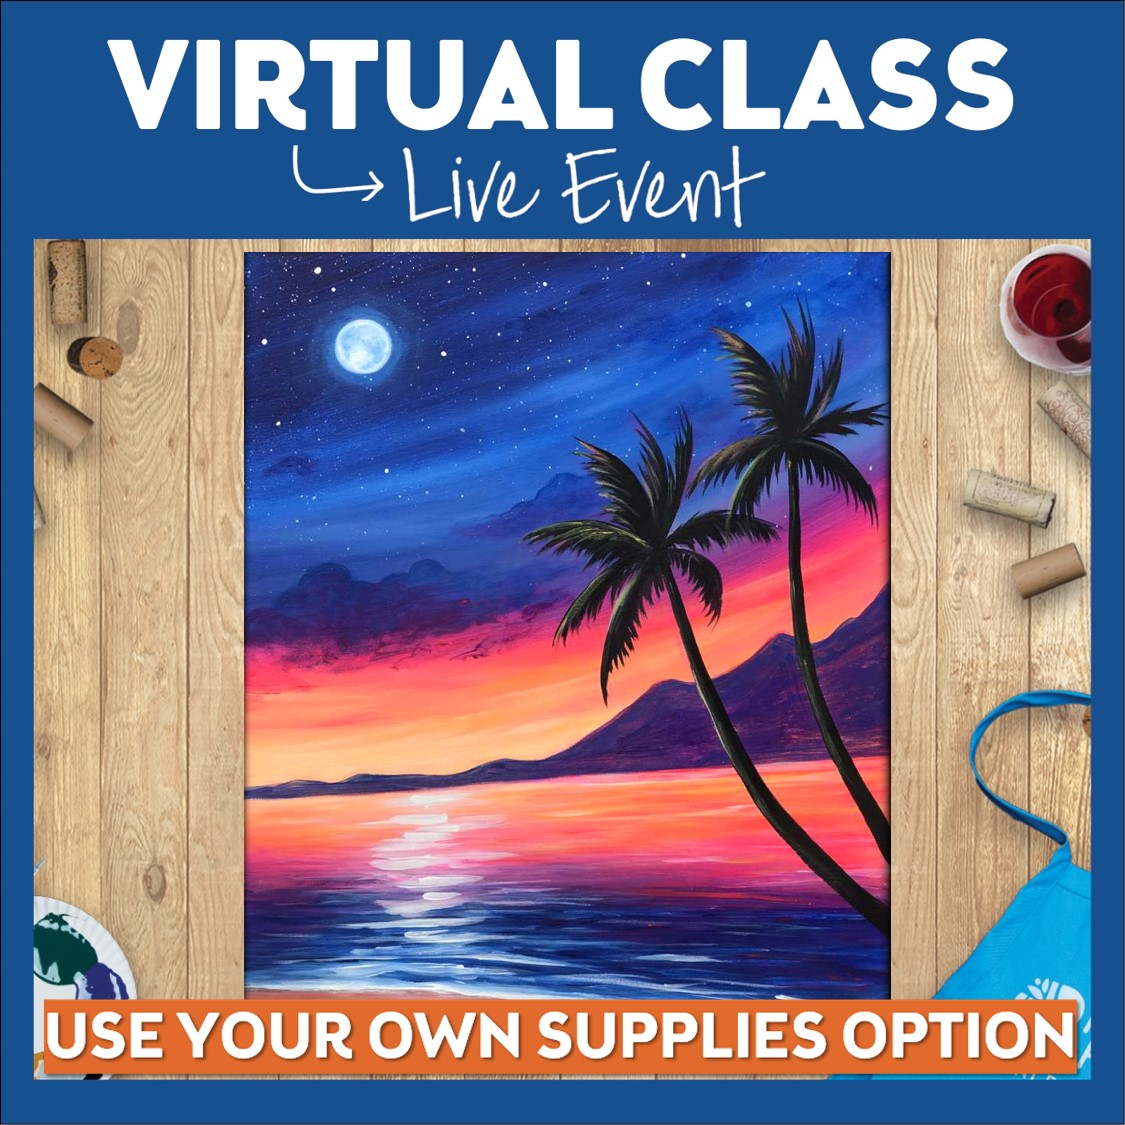 LIVE Virtual Public Class - No Supplies Included